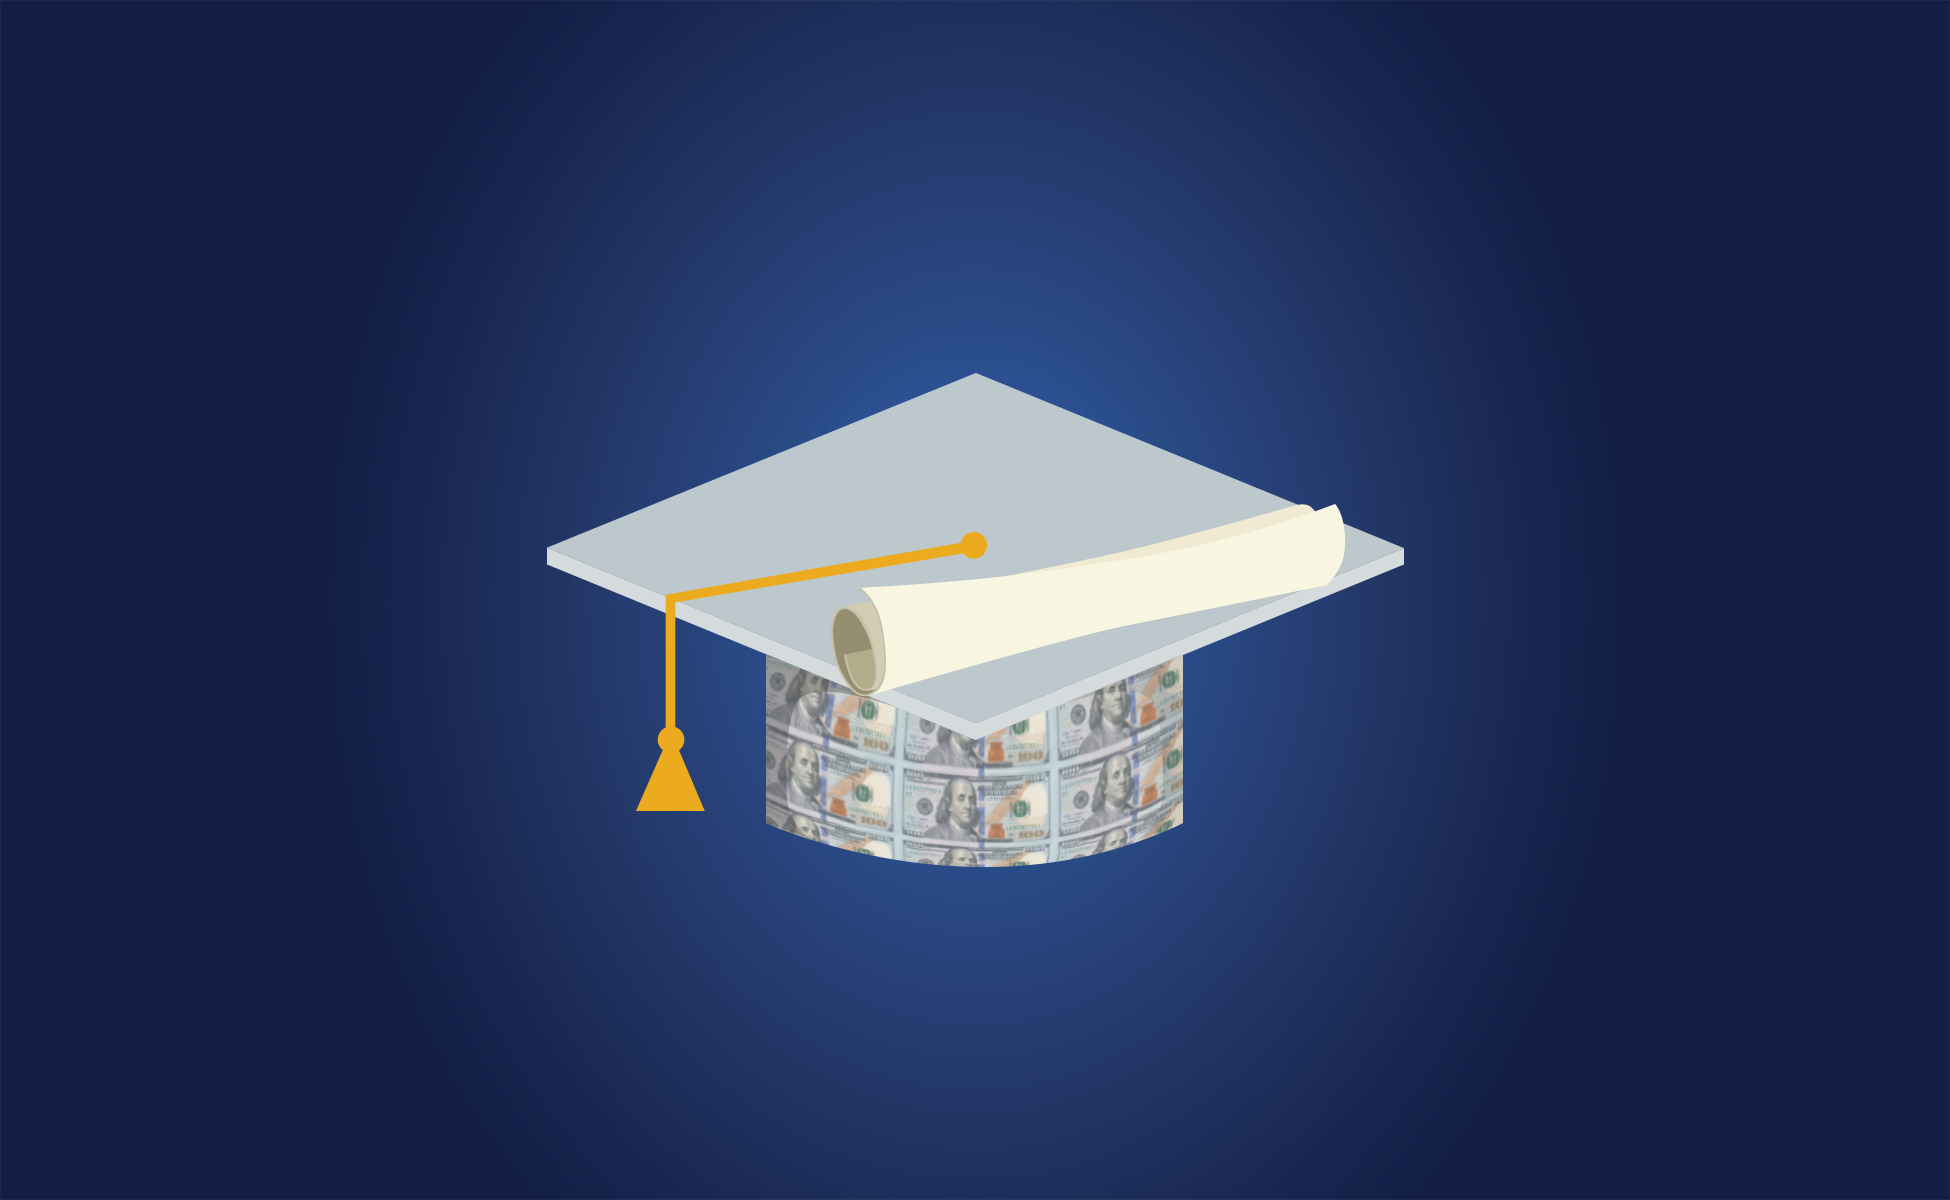 Illustration of a graduation cap with money